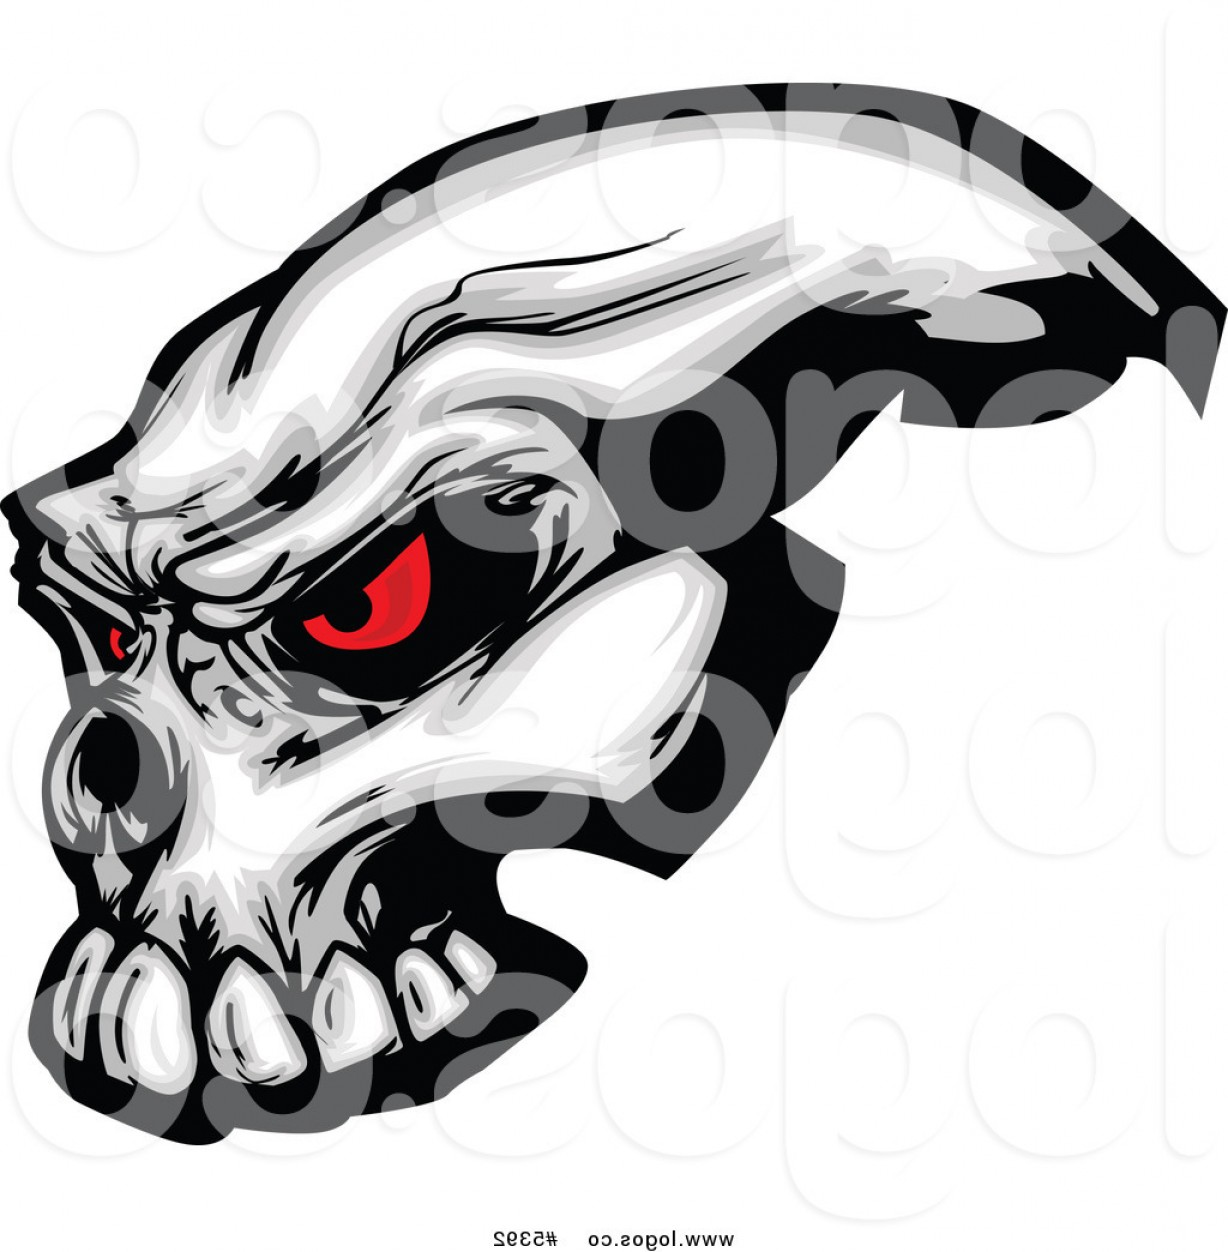 Eye Tribal Skull Vector: Royalty Free Vector Of A Logo Of An Evil Skull With Red Eyes By Chromaco